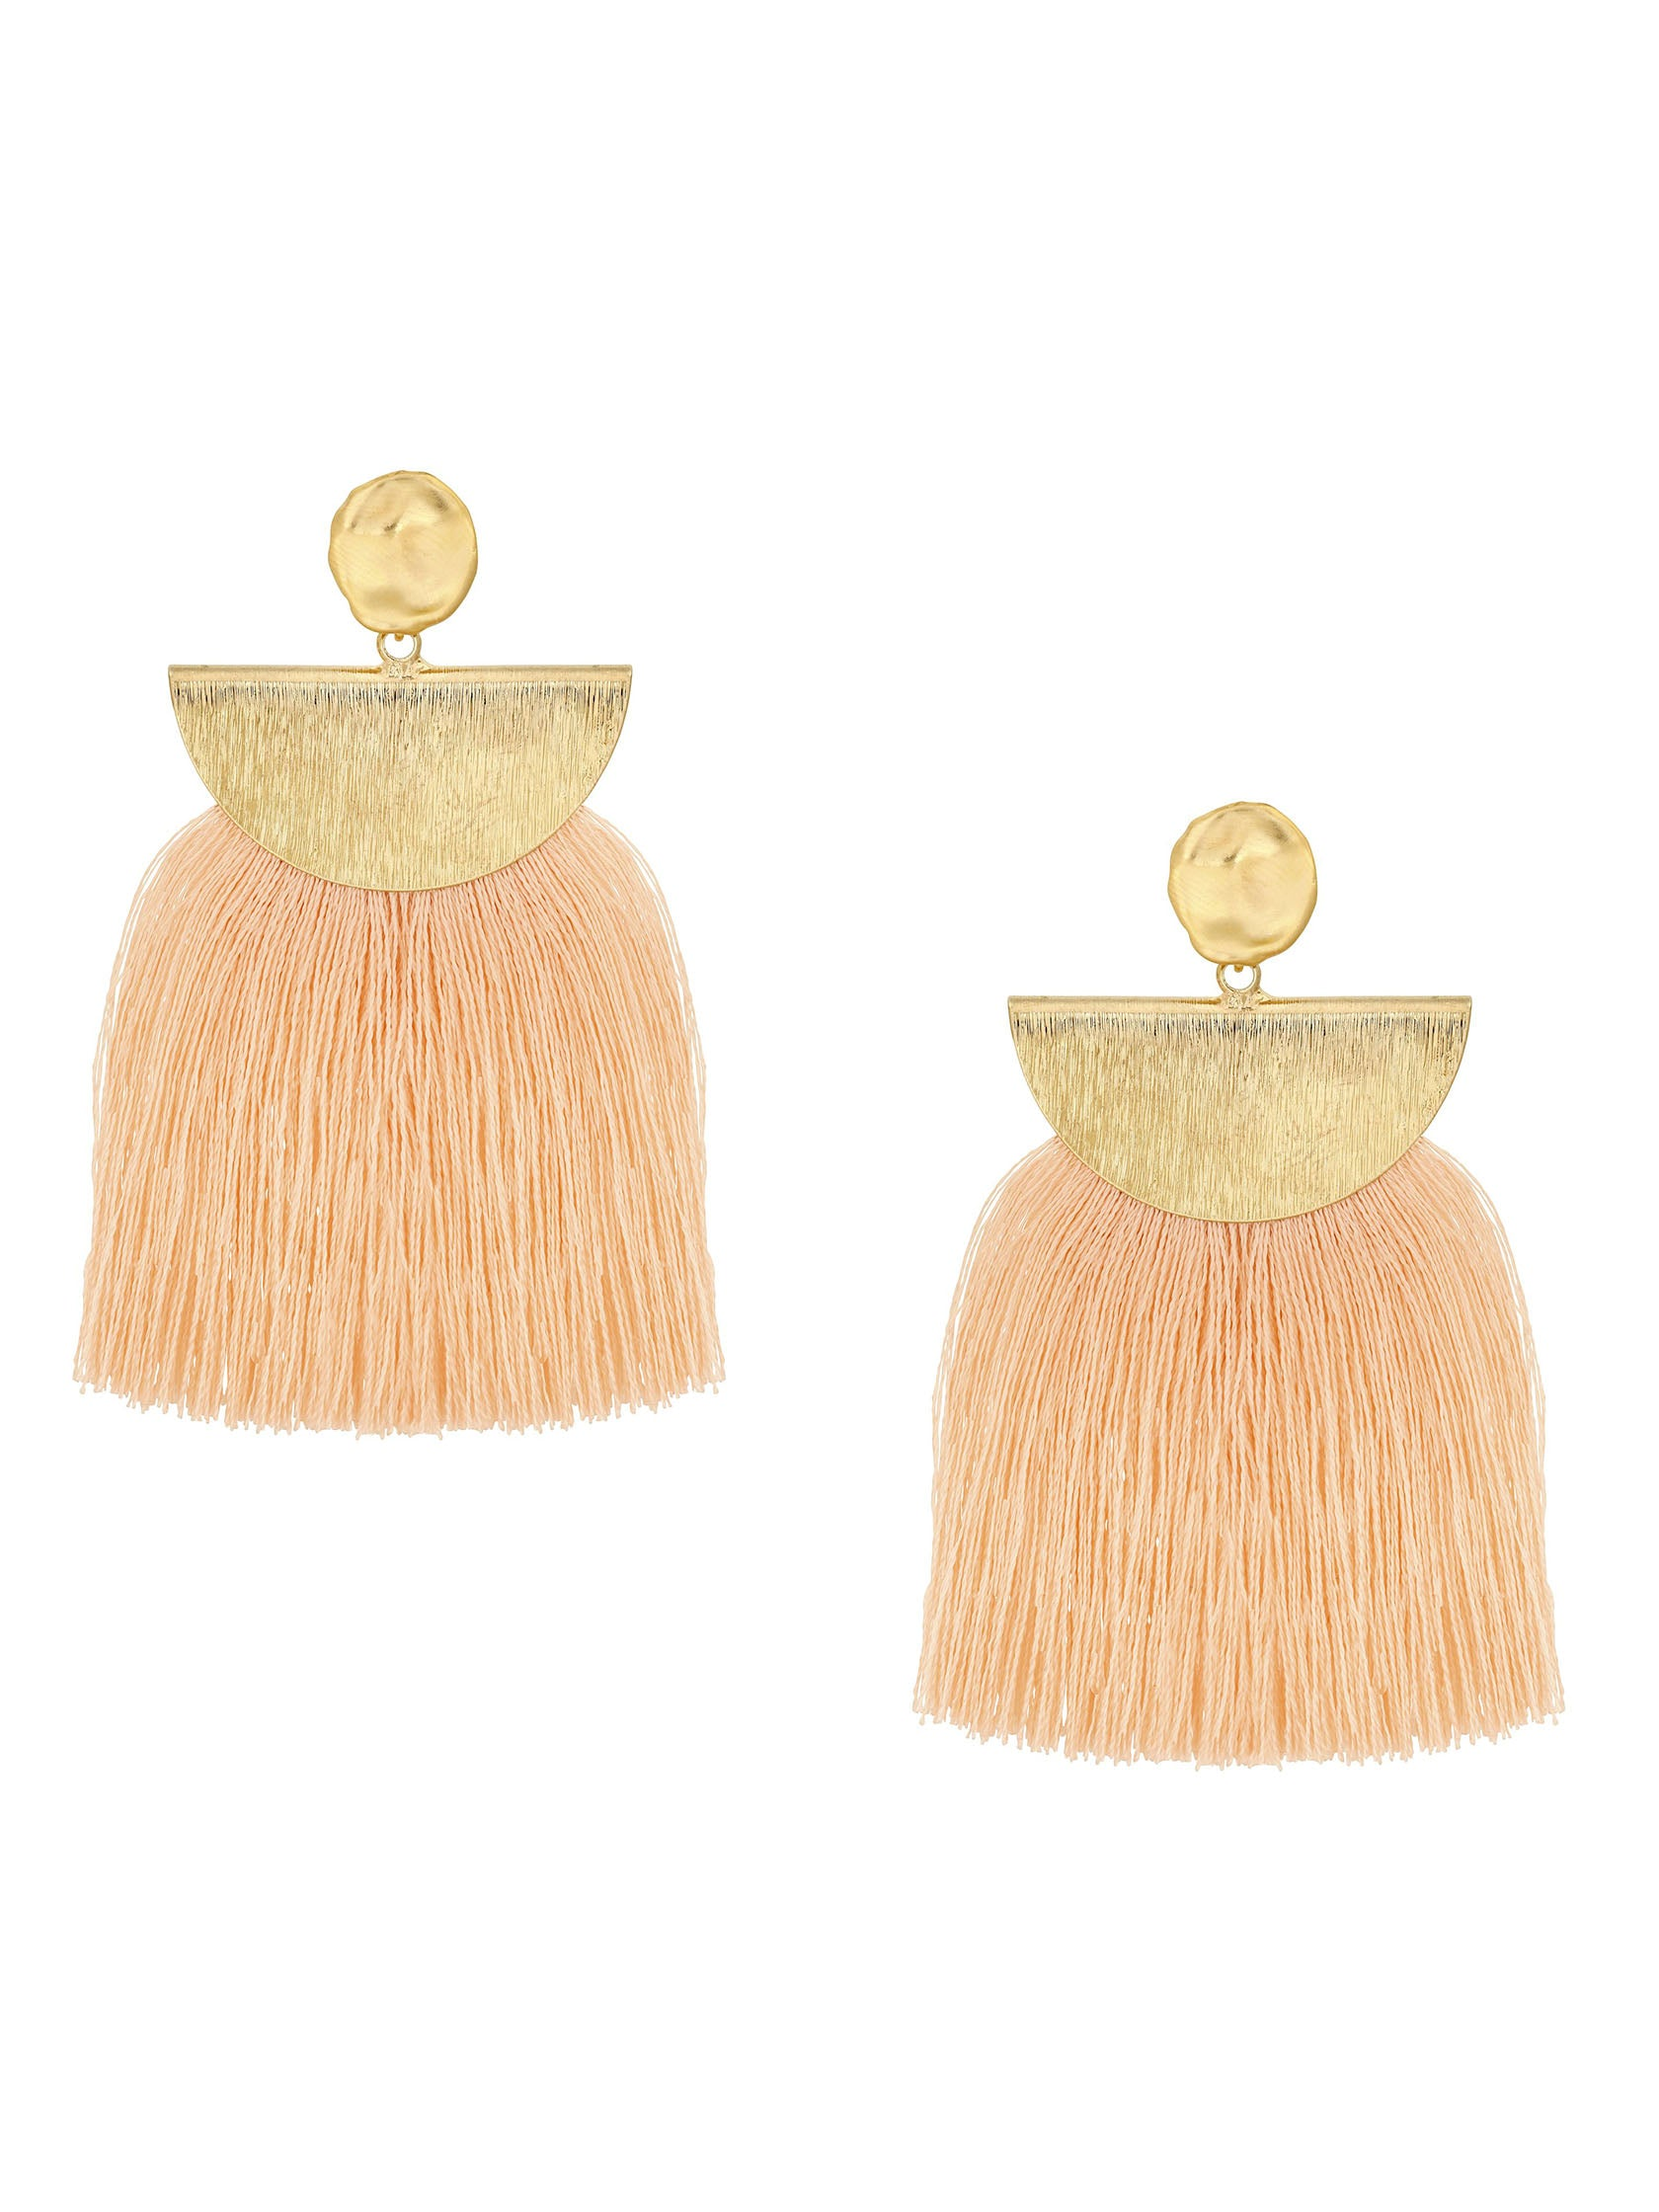 Girl wearing a earrings rental from Five and Two called Lydia Wide Tassel Fringe Earring